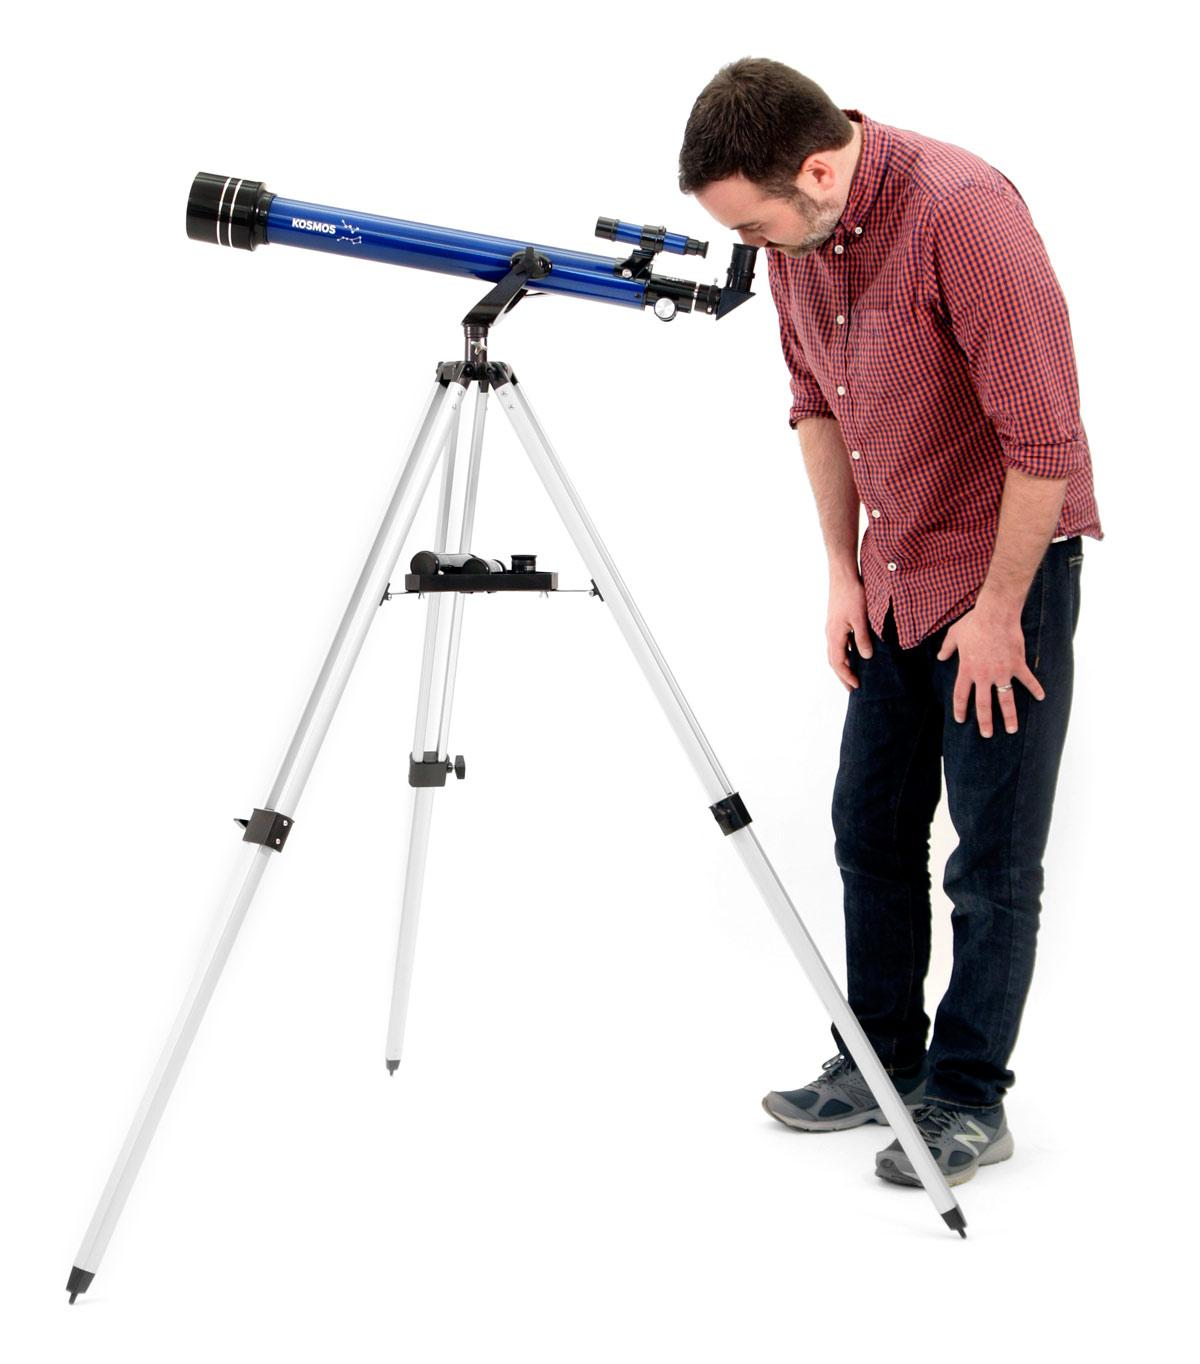 astronomy kits for adults - HD1056×1200